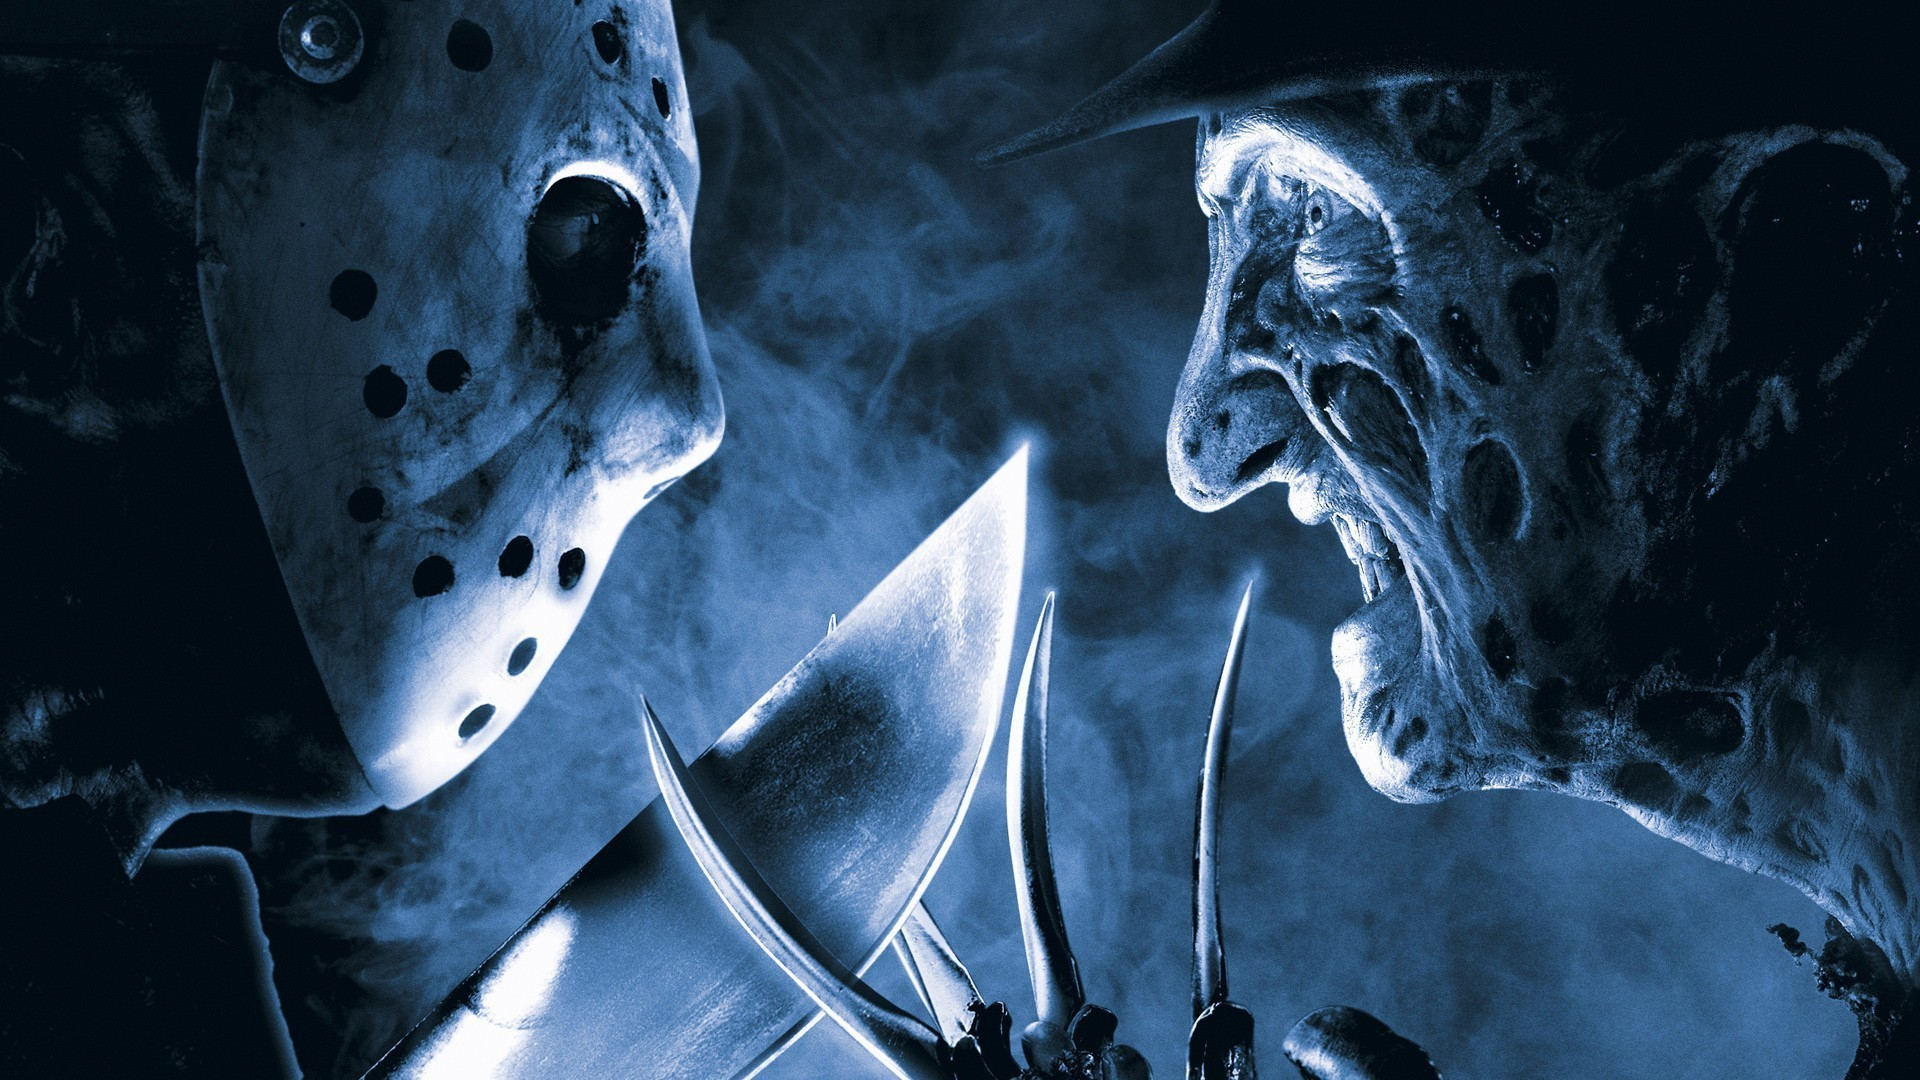 Freddy Krueger Wallpapers Images Photos Pictures Backgrounds 1920x1080